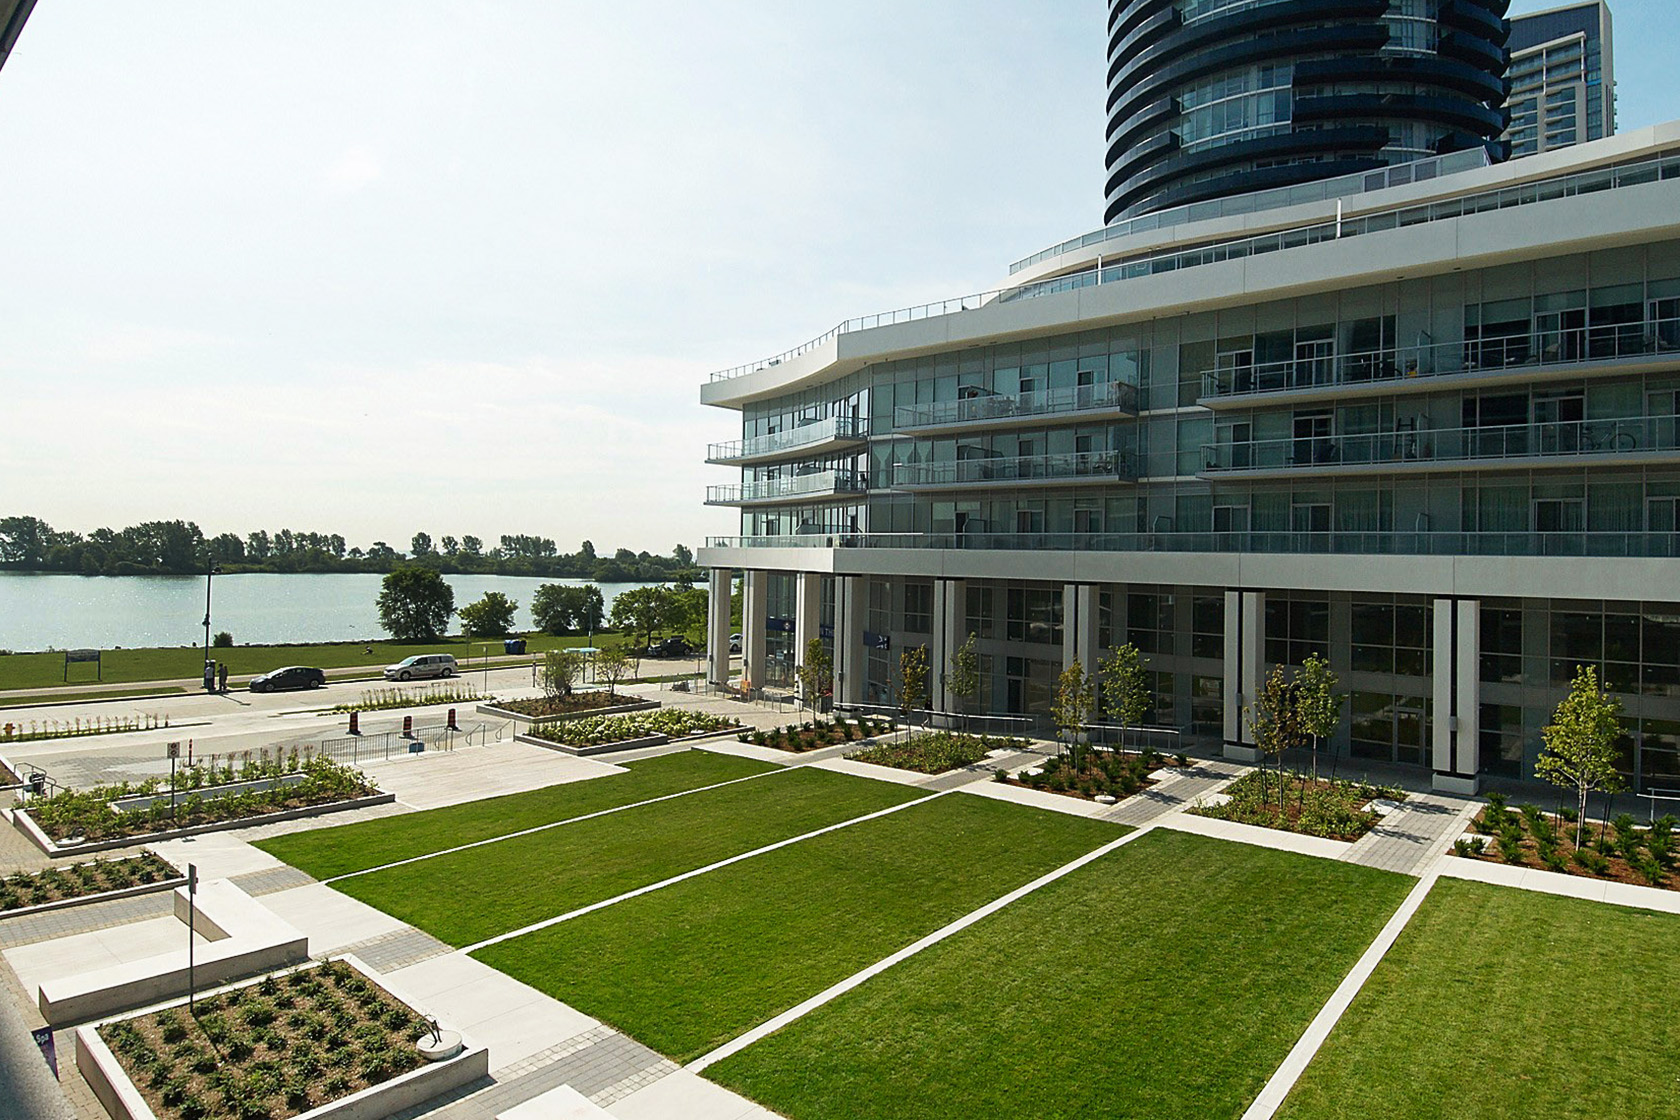 beyond the sea Explorer at Waterview | Monthly Featured Condo | August 2017 58 marine parade dr toronto explorer at waterview condo etobicoke condos outdoor terrace humber bay shores